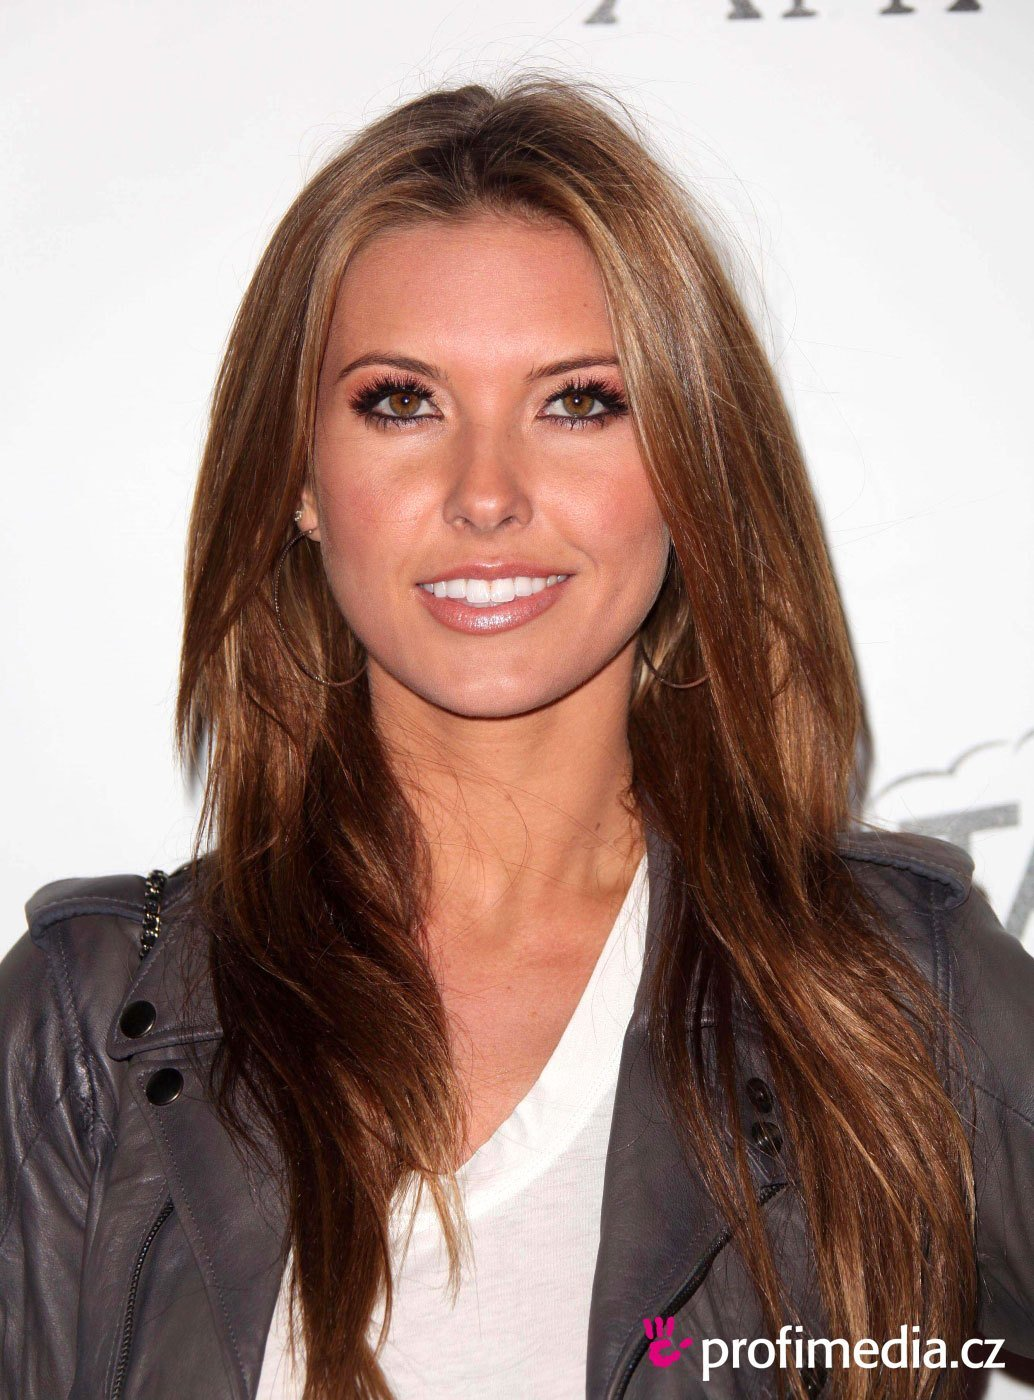 The Best Audrina Patridge Hairstyle Easyhairstyler Pictures